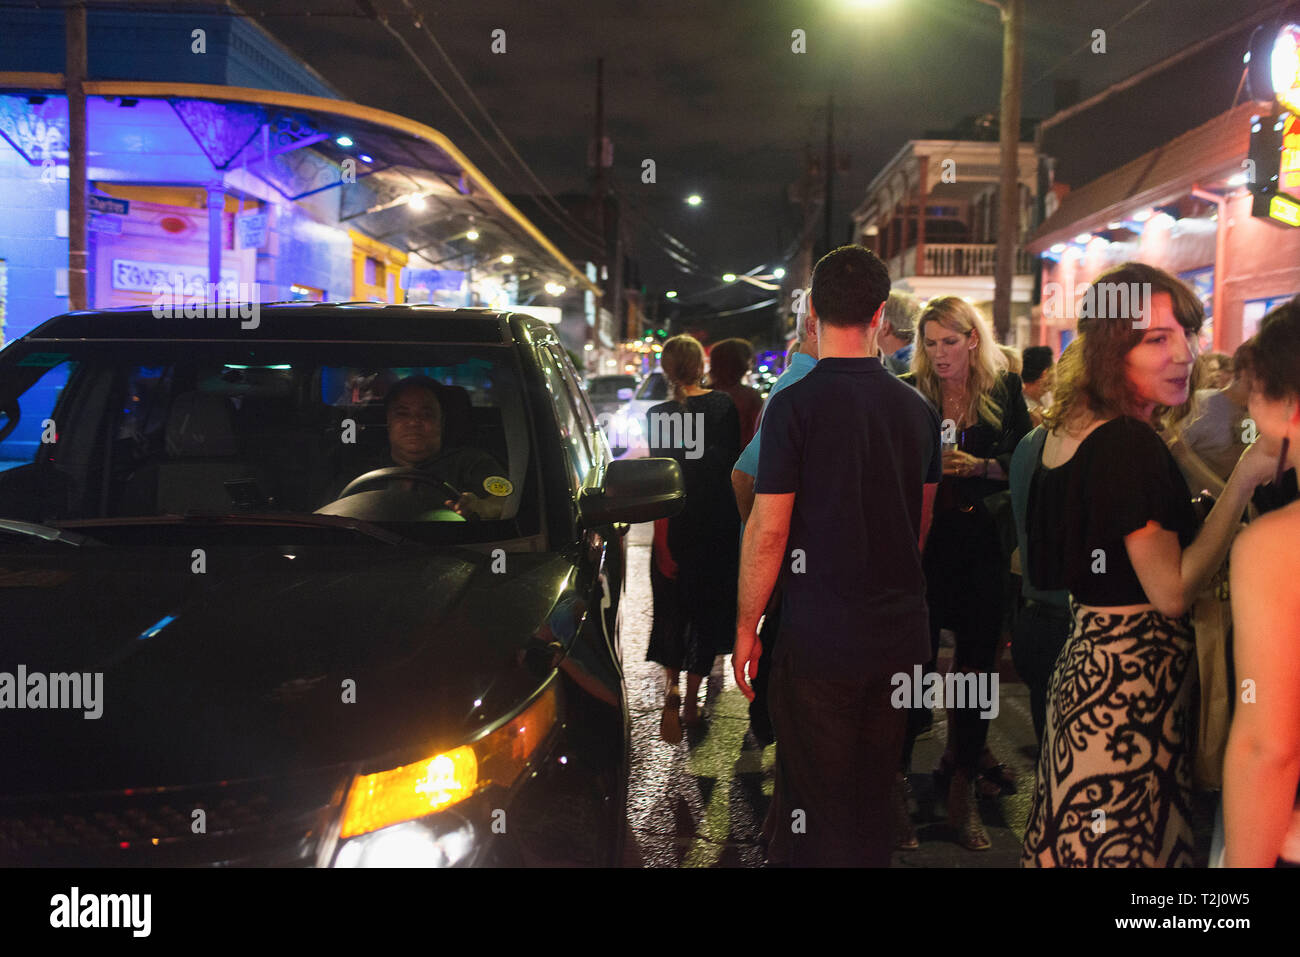 The party scene on Frenchmen Street in New Orleans. - Stock Image